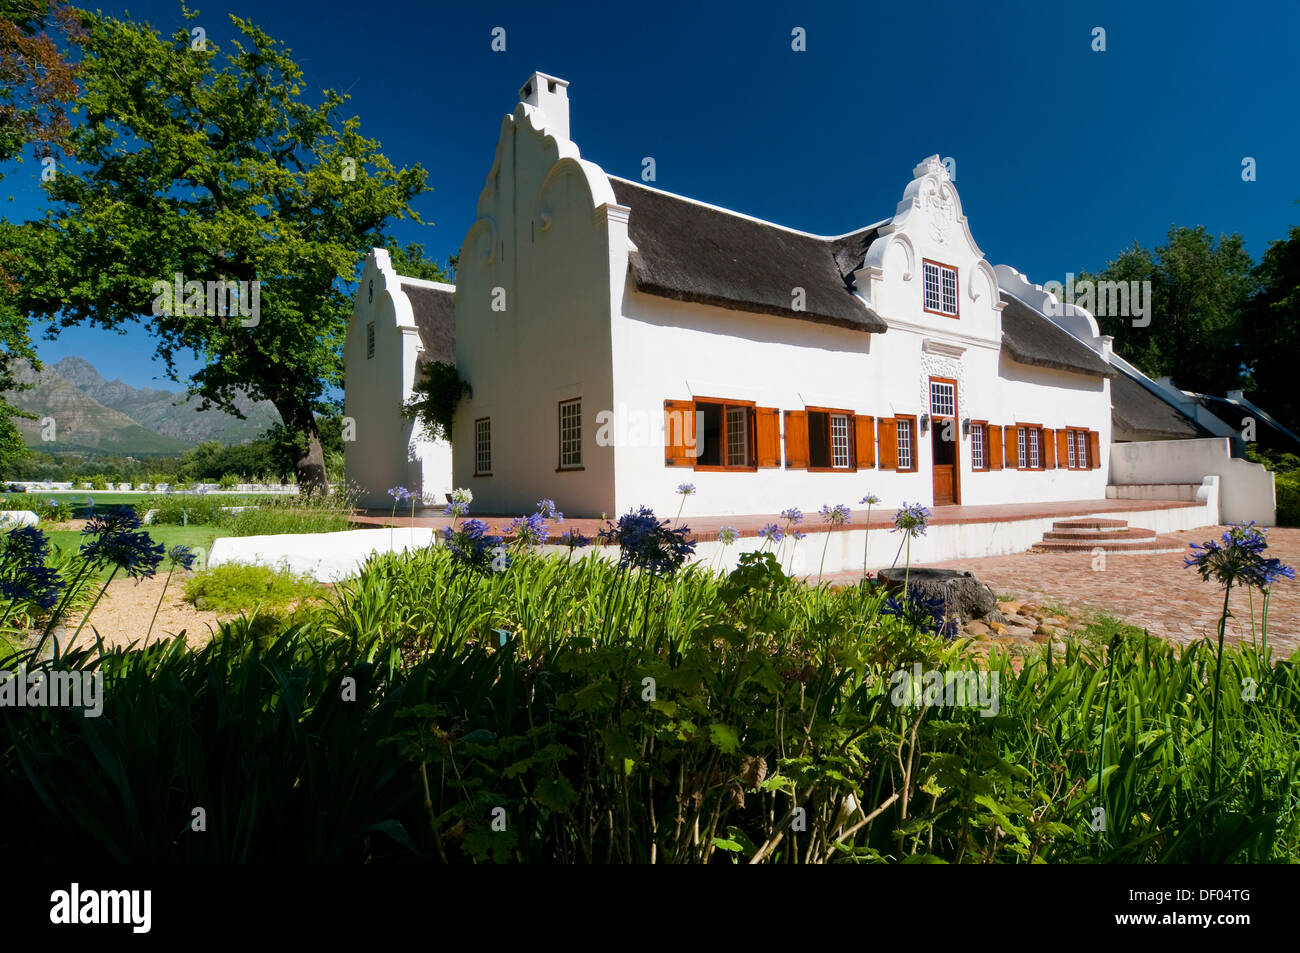 Main house, Blaauwklippen winery, Stellenbosch, Western Cape, South Africa, Africa - Stock Image